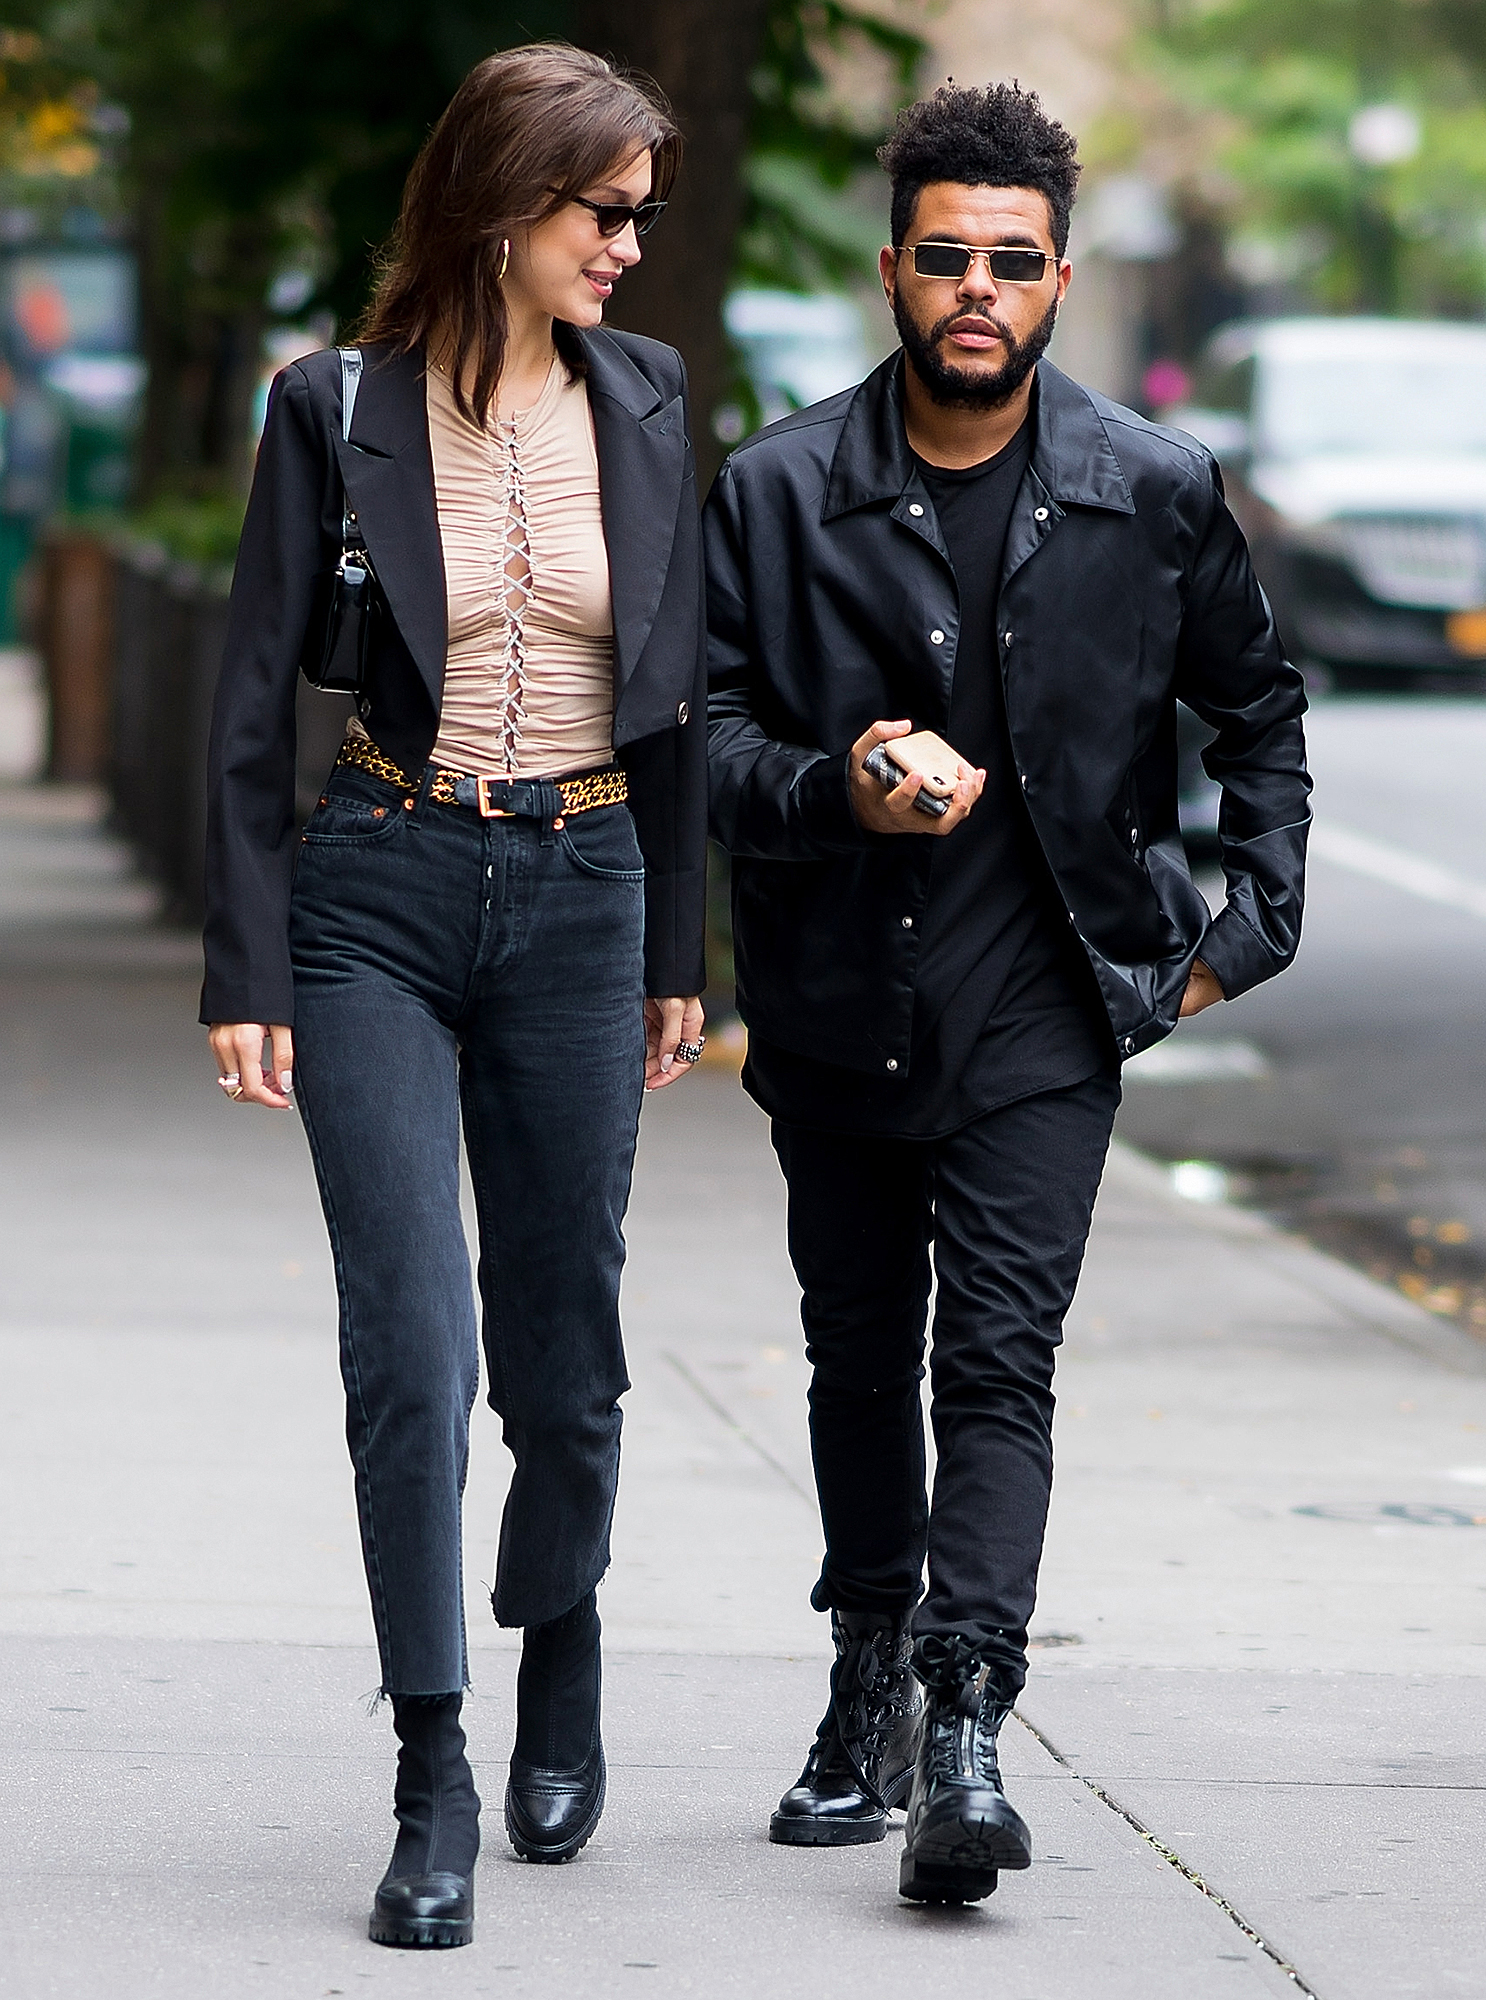 17-Bringing-Him-Home-to-Mom-the-weeknd-bella-hadid - Hadid brought the record producer to Yolanda Hadid 's rural estate in Pennsylvania in July 2018, where they documented their time together on their social media accounts.